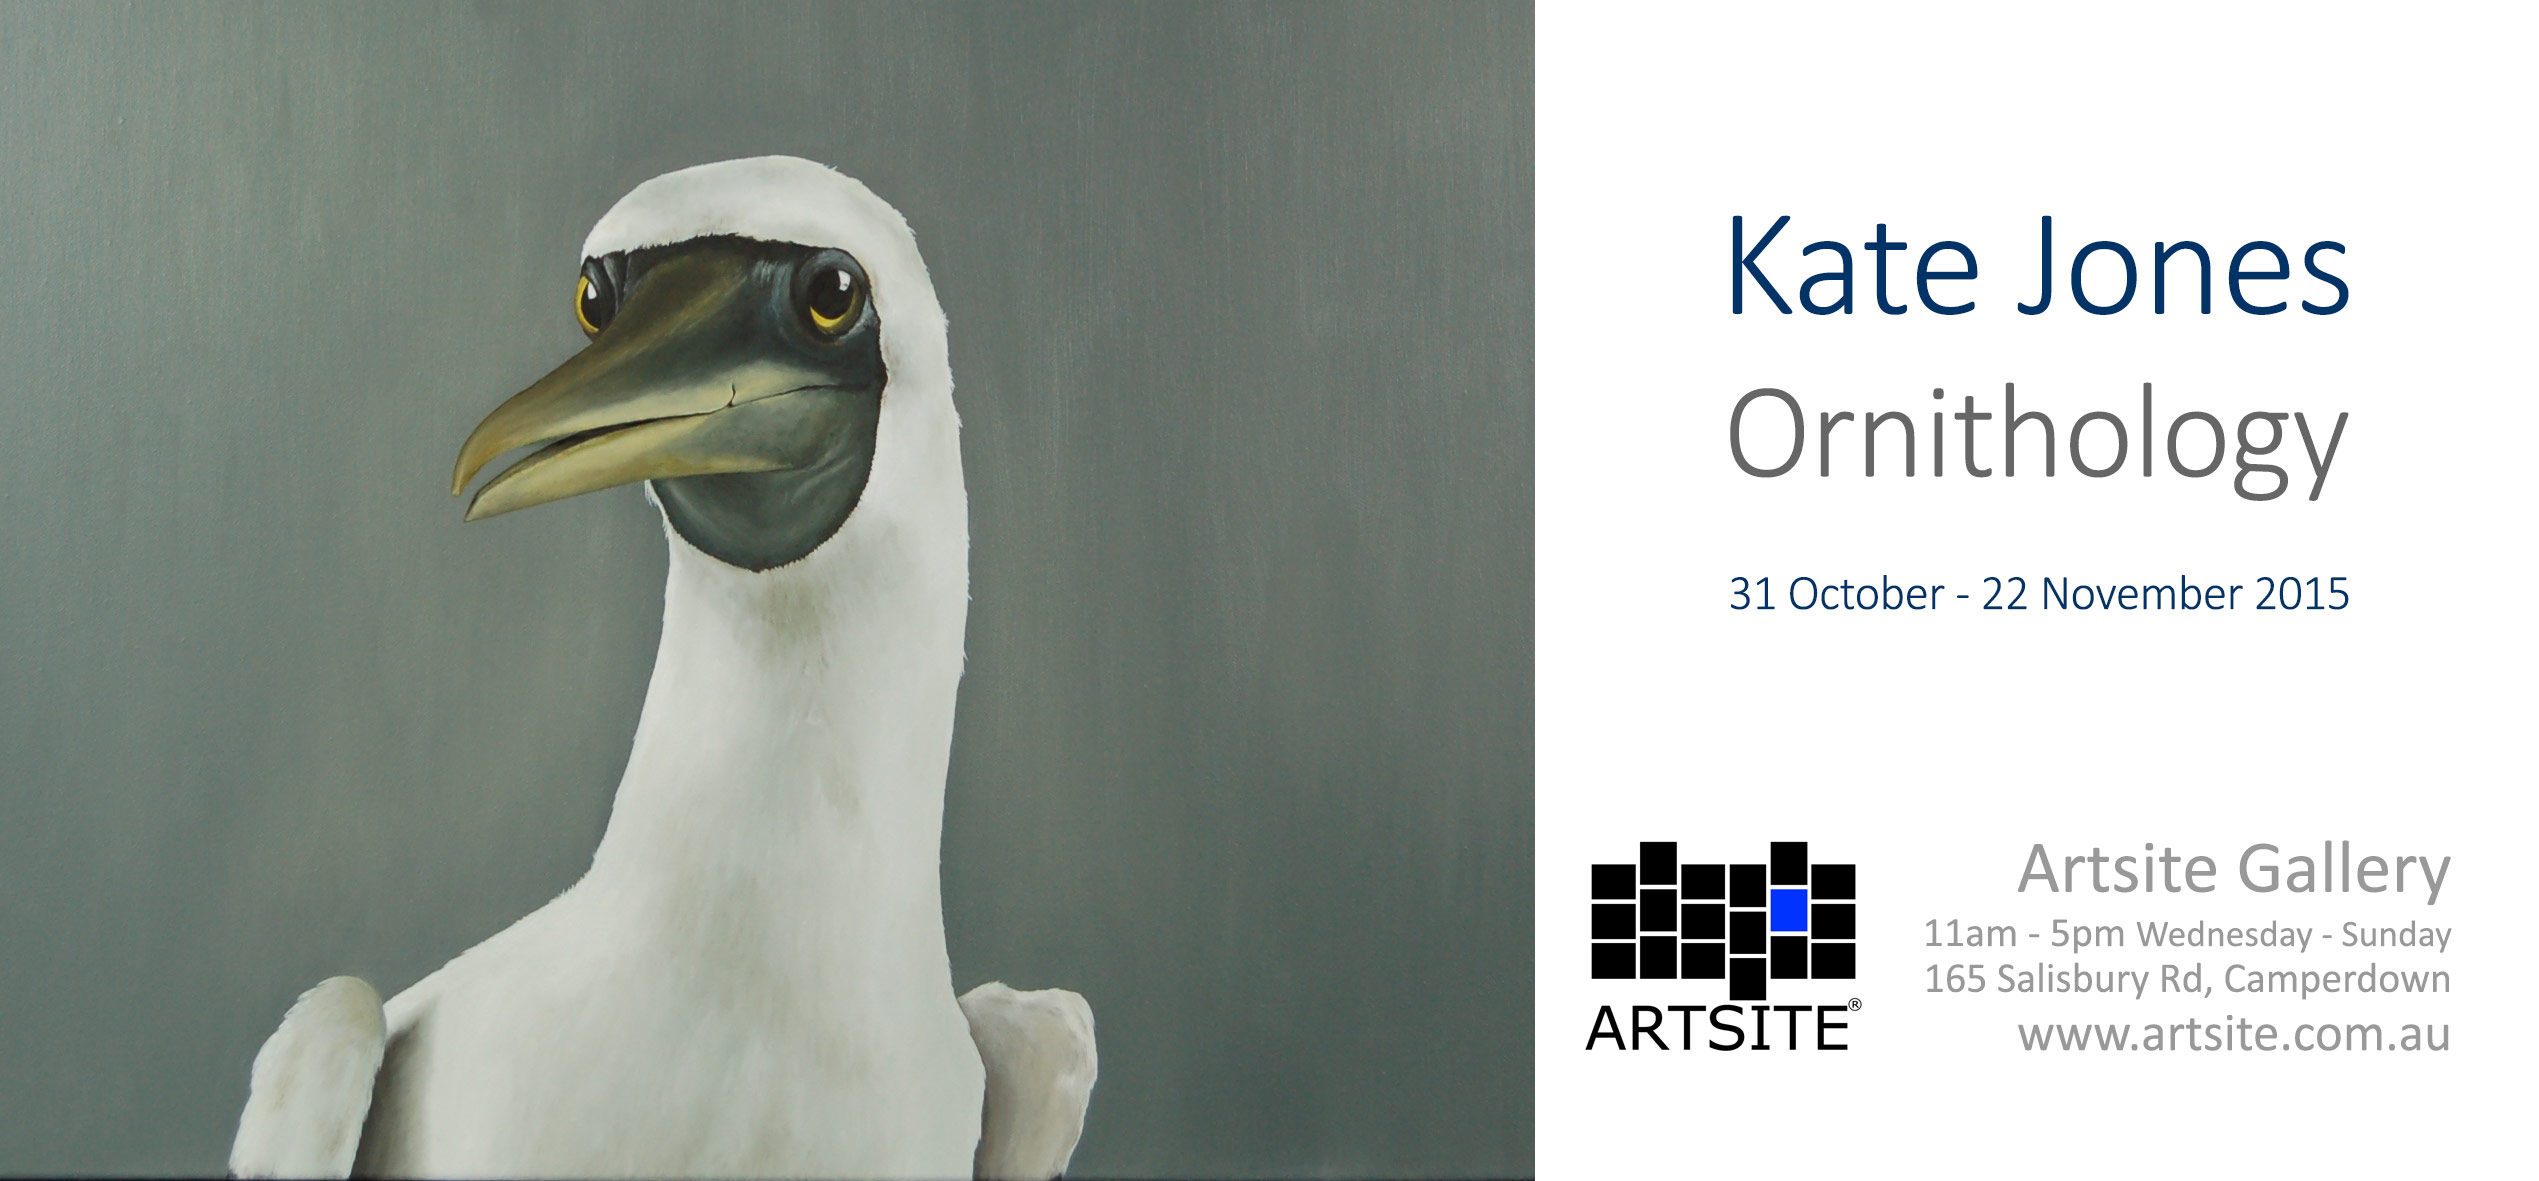 View Exhibition at Artsite Gallery, Sydney: Ornithology - Kate Jones 31 October - 22 November 2015